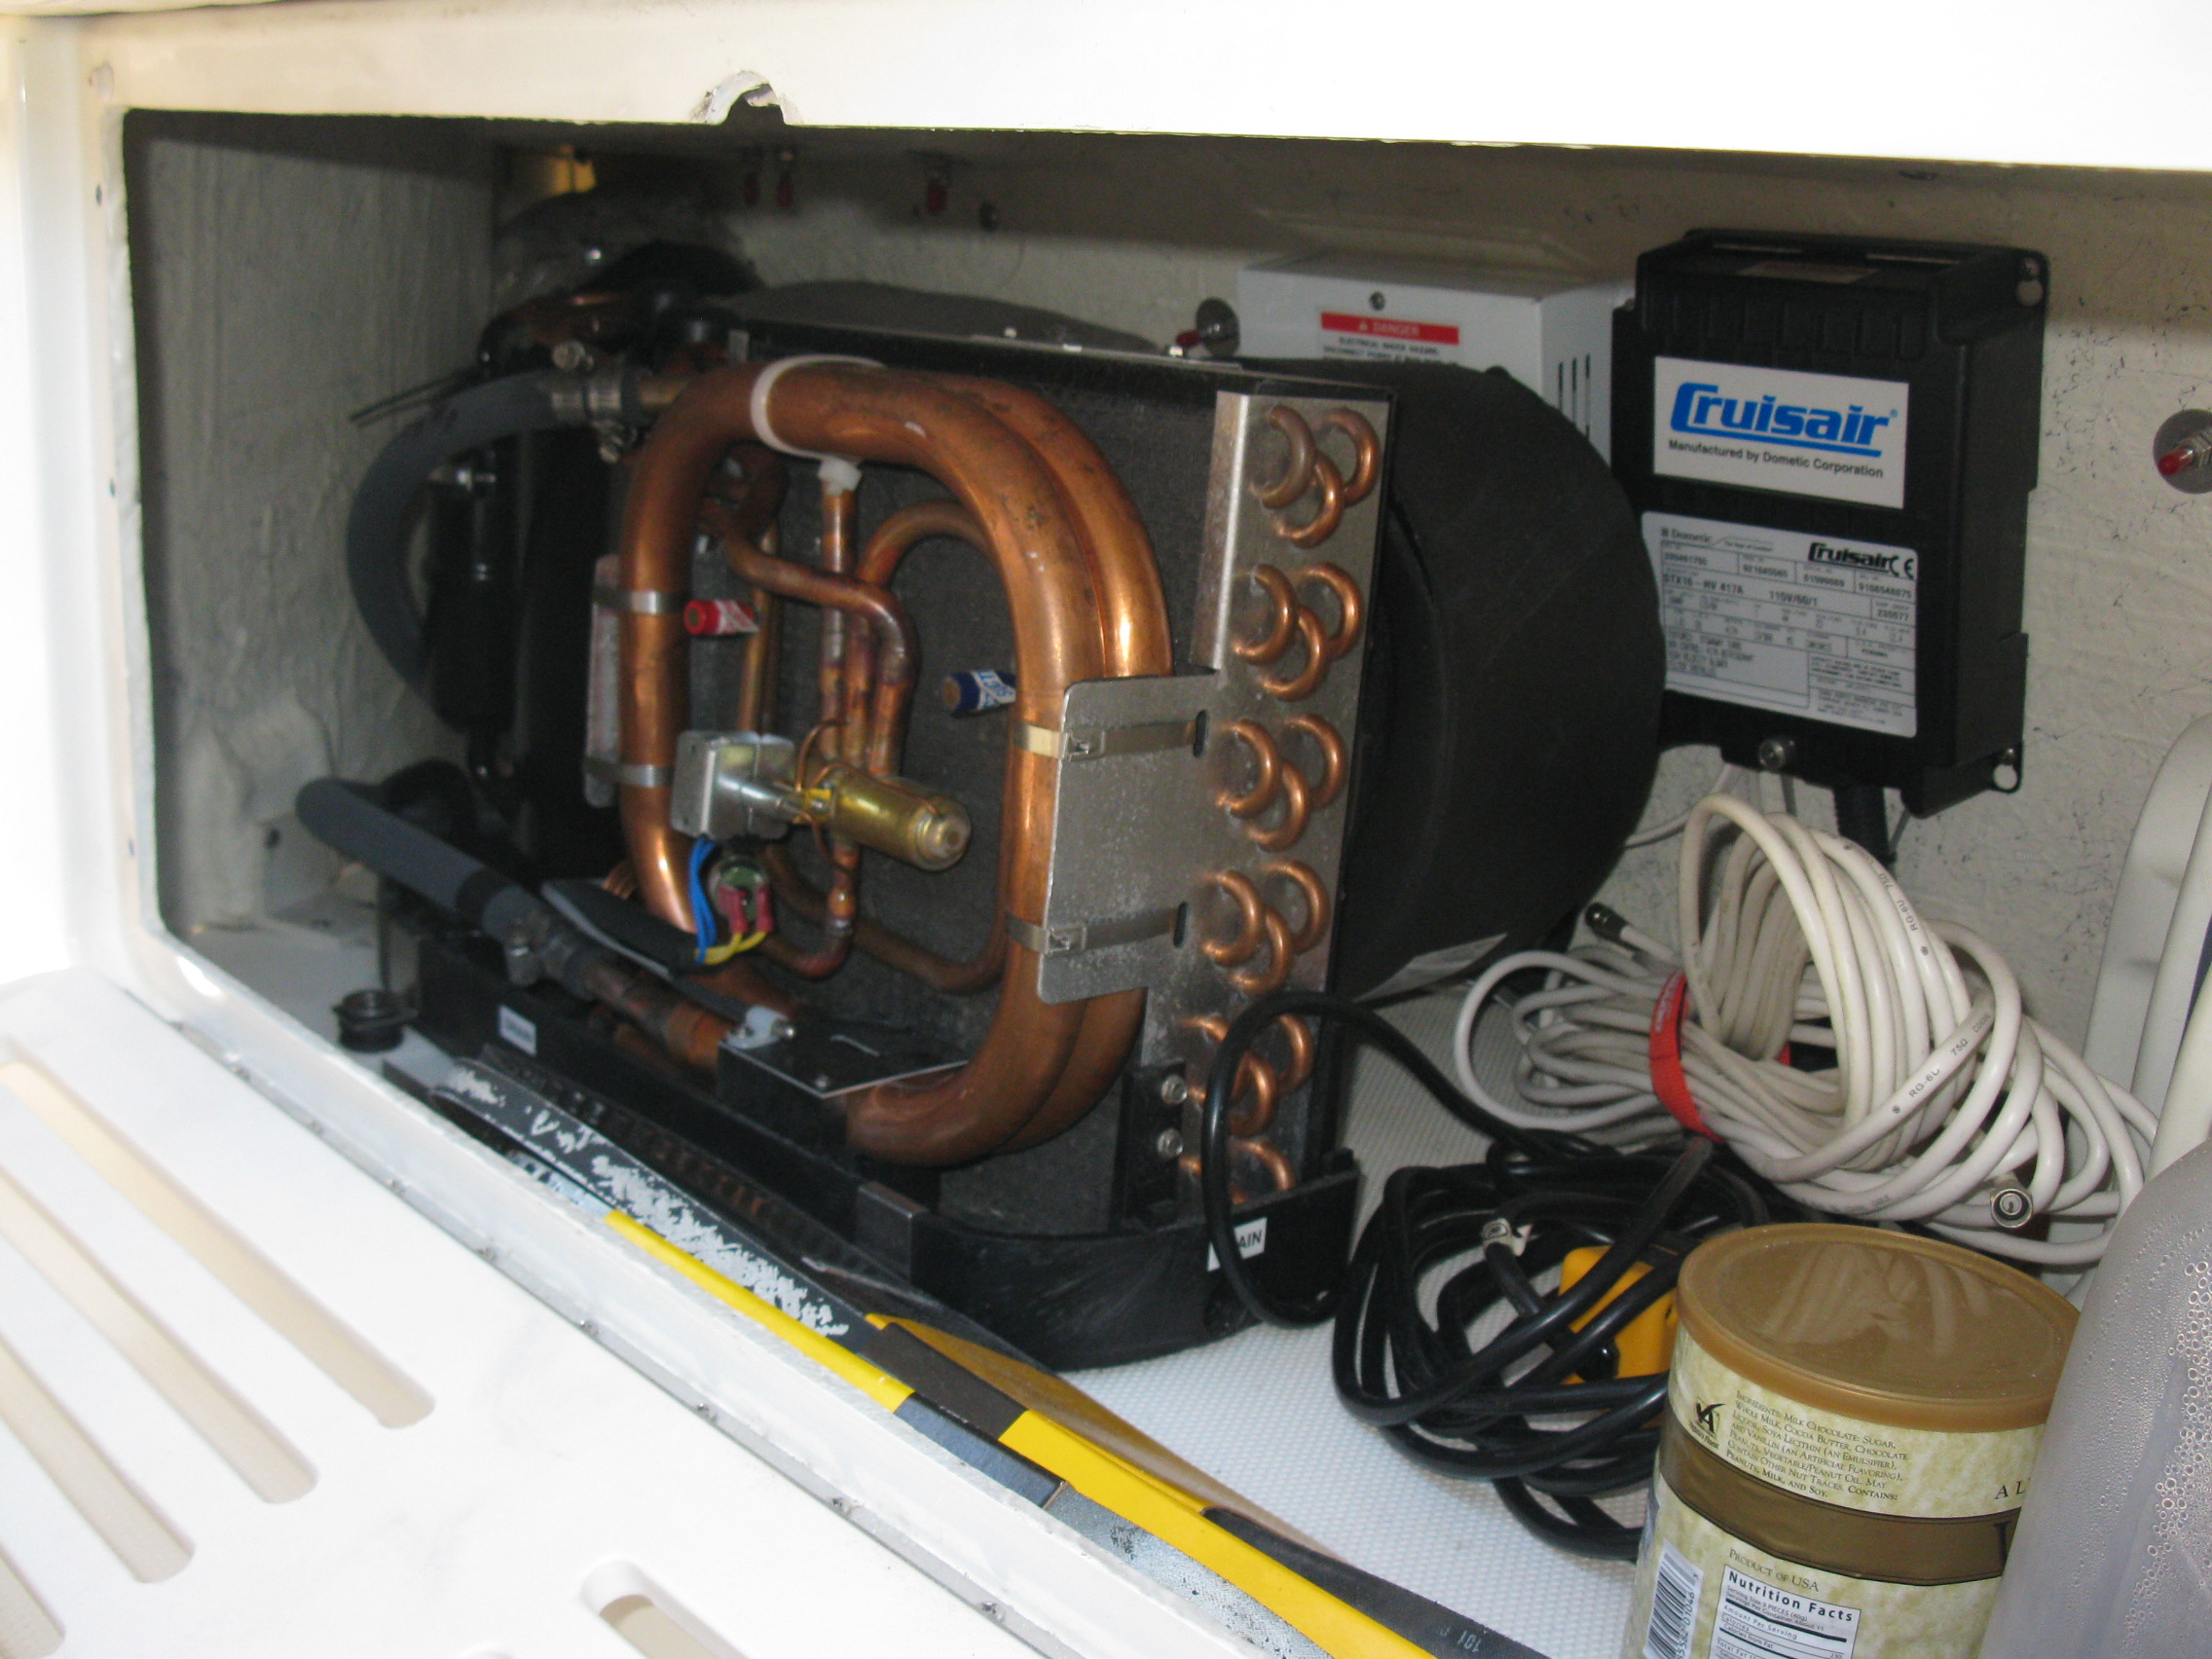 Custom Ac Installations Southeastern Marine Of The Carolinas 843 Wiring 16000 Btu Crusair Turbo Unit On Starboard Side